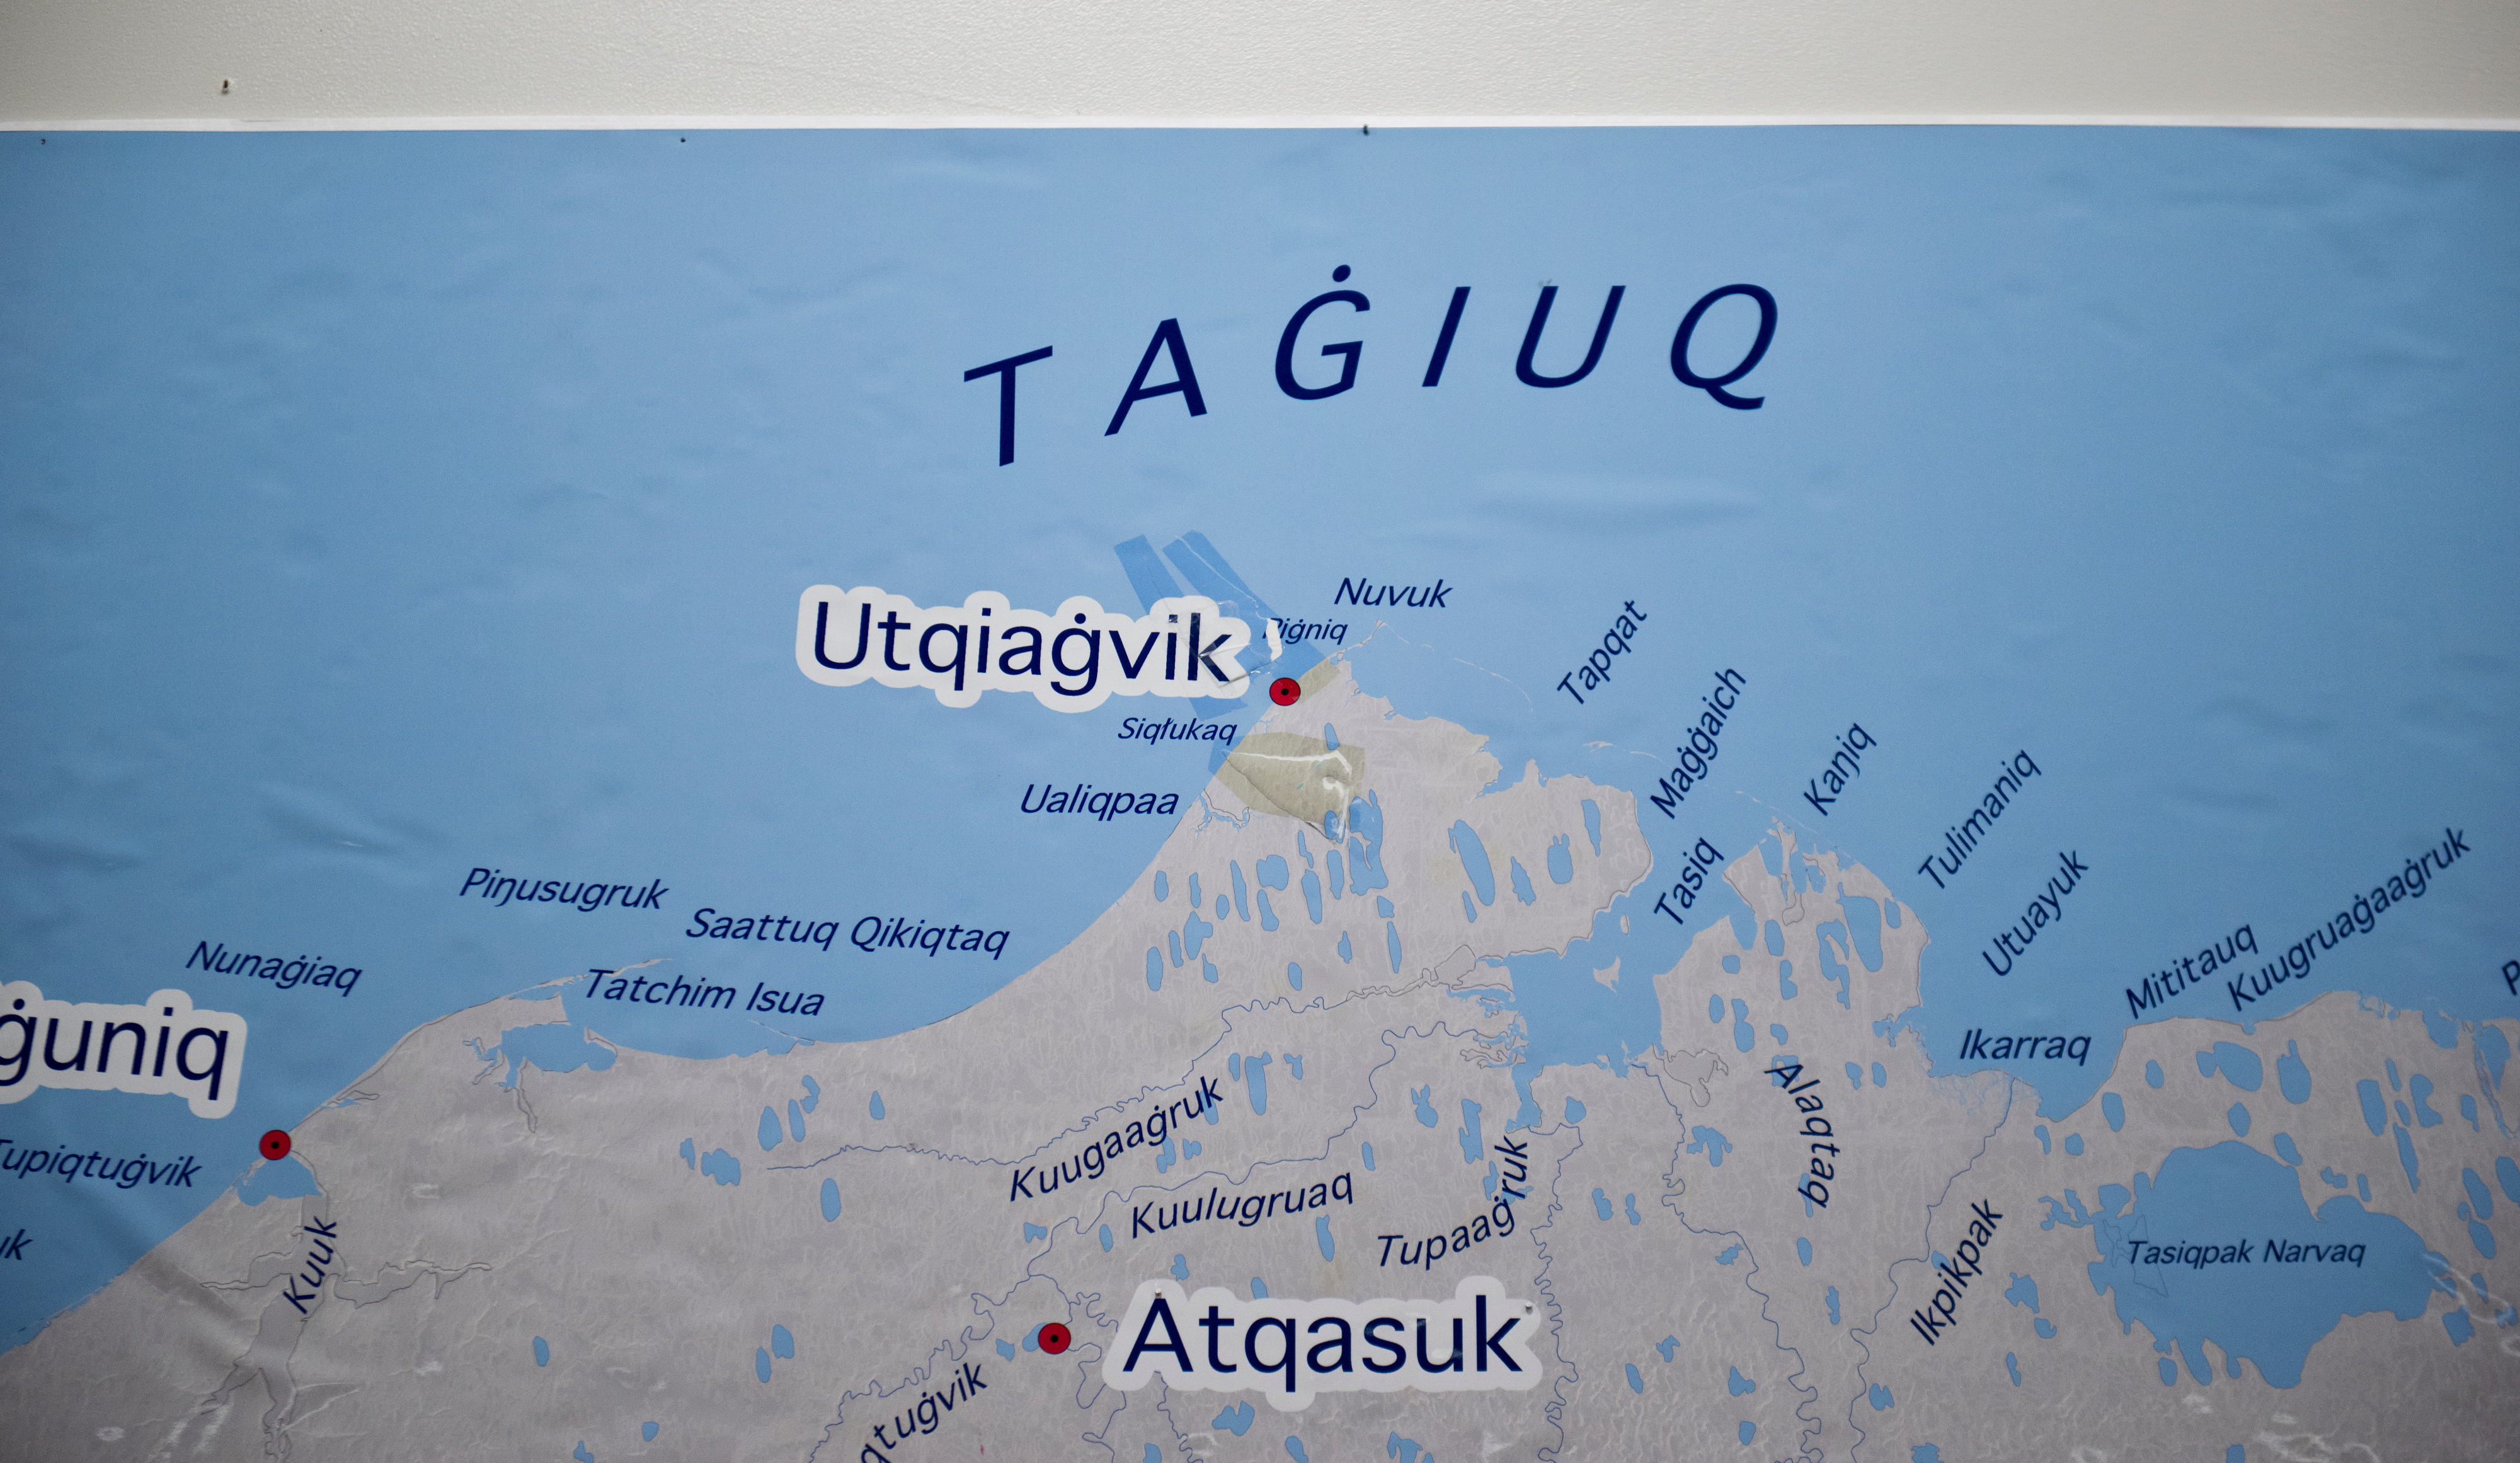 A large map showing Inupiaq language place names shows the city of Barrow as Utqiagvik at the Inupiat Heritage Center. Voters approved changing the name of the city of Barrow to Utqiaġvik in October, a change which went into effect on December 1. In Alaska's northernmost city, however, residents remain divided about whether they name should've changed at all, whether the process was hurried, and whether the Utqiagvik is even the proper Inupiaq place name. Photographed on Monday, December 12, 2016. (Marc Lester / Alaska Dispatch News)